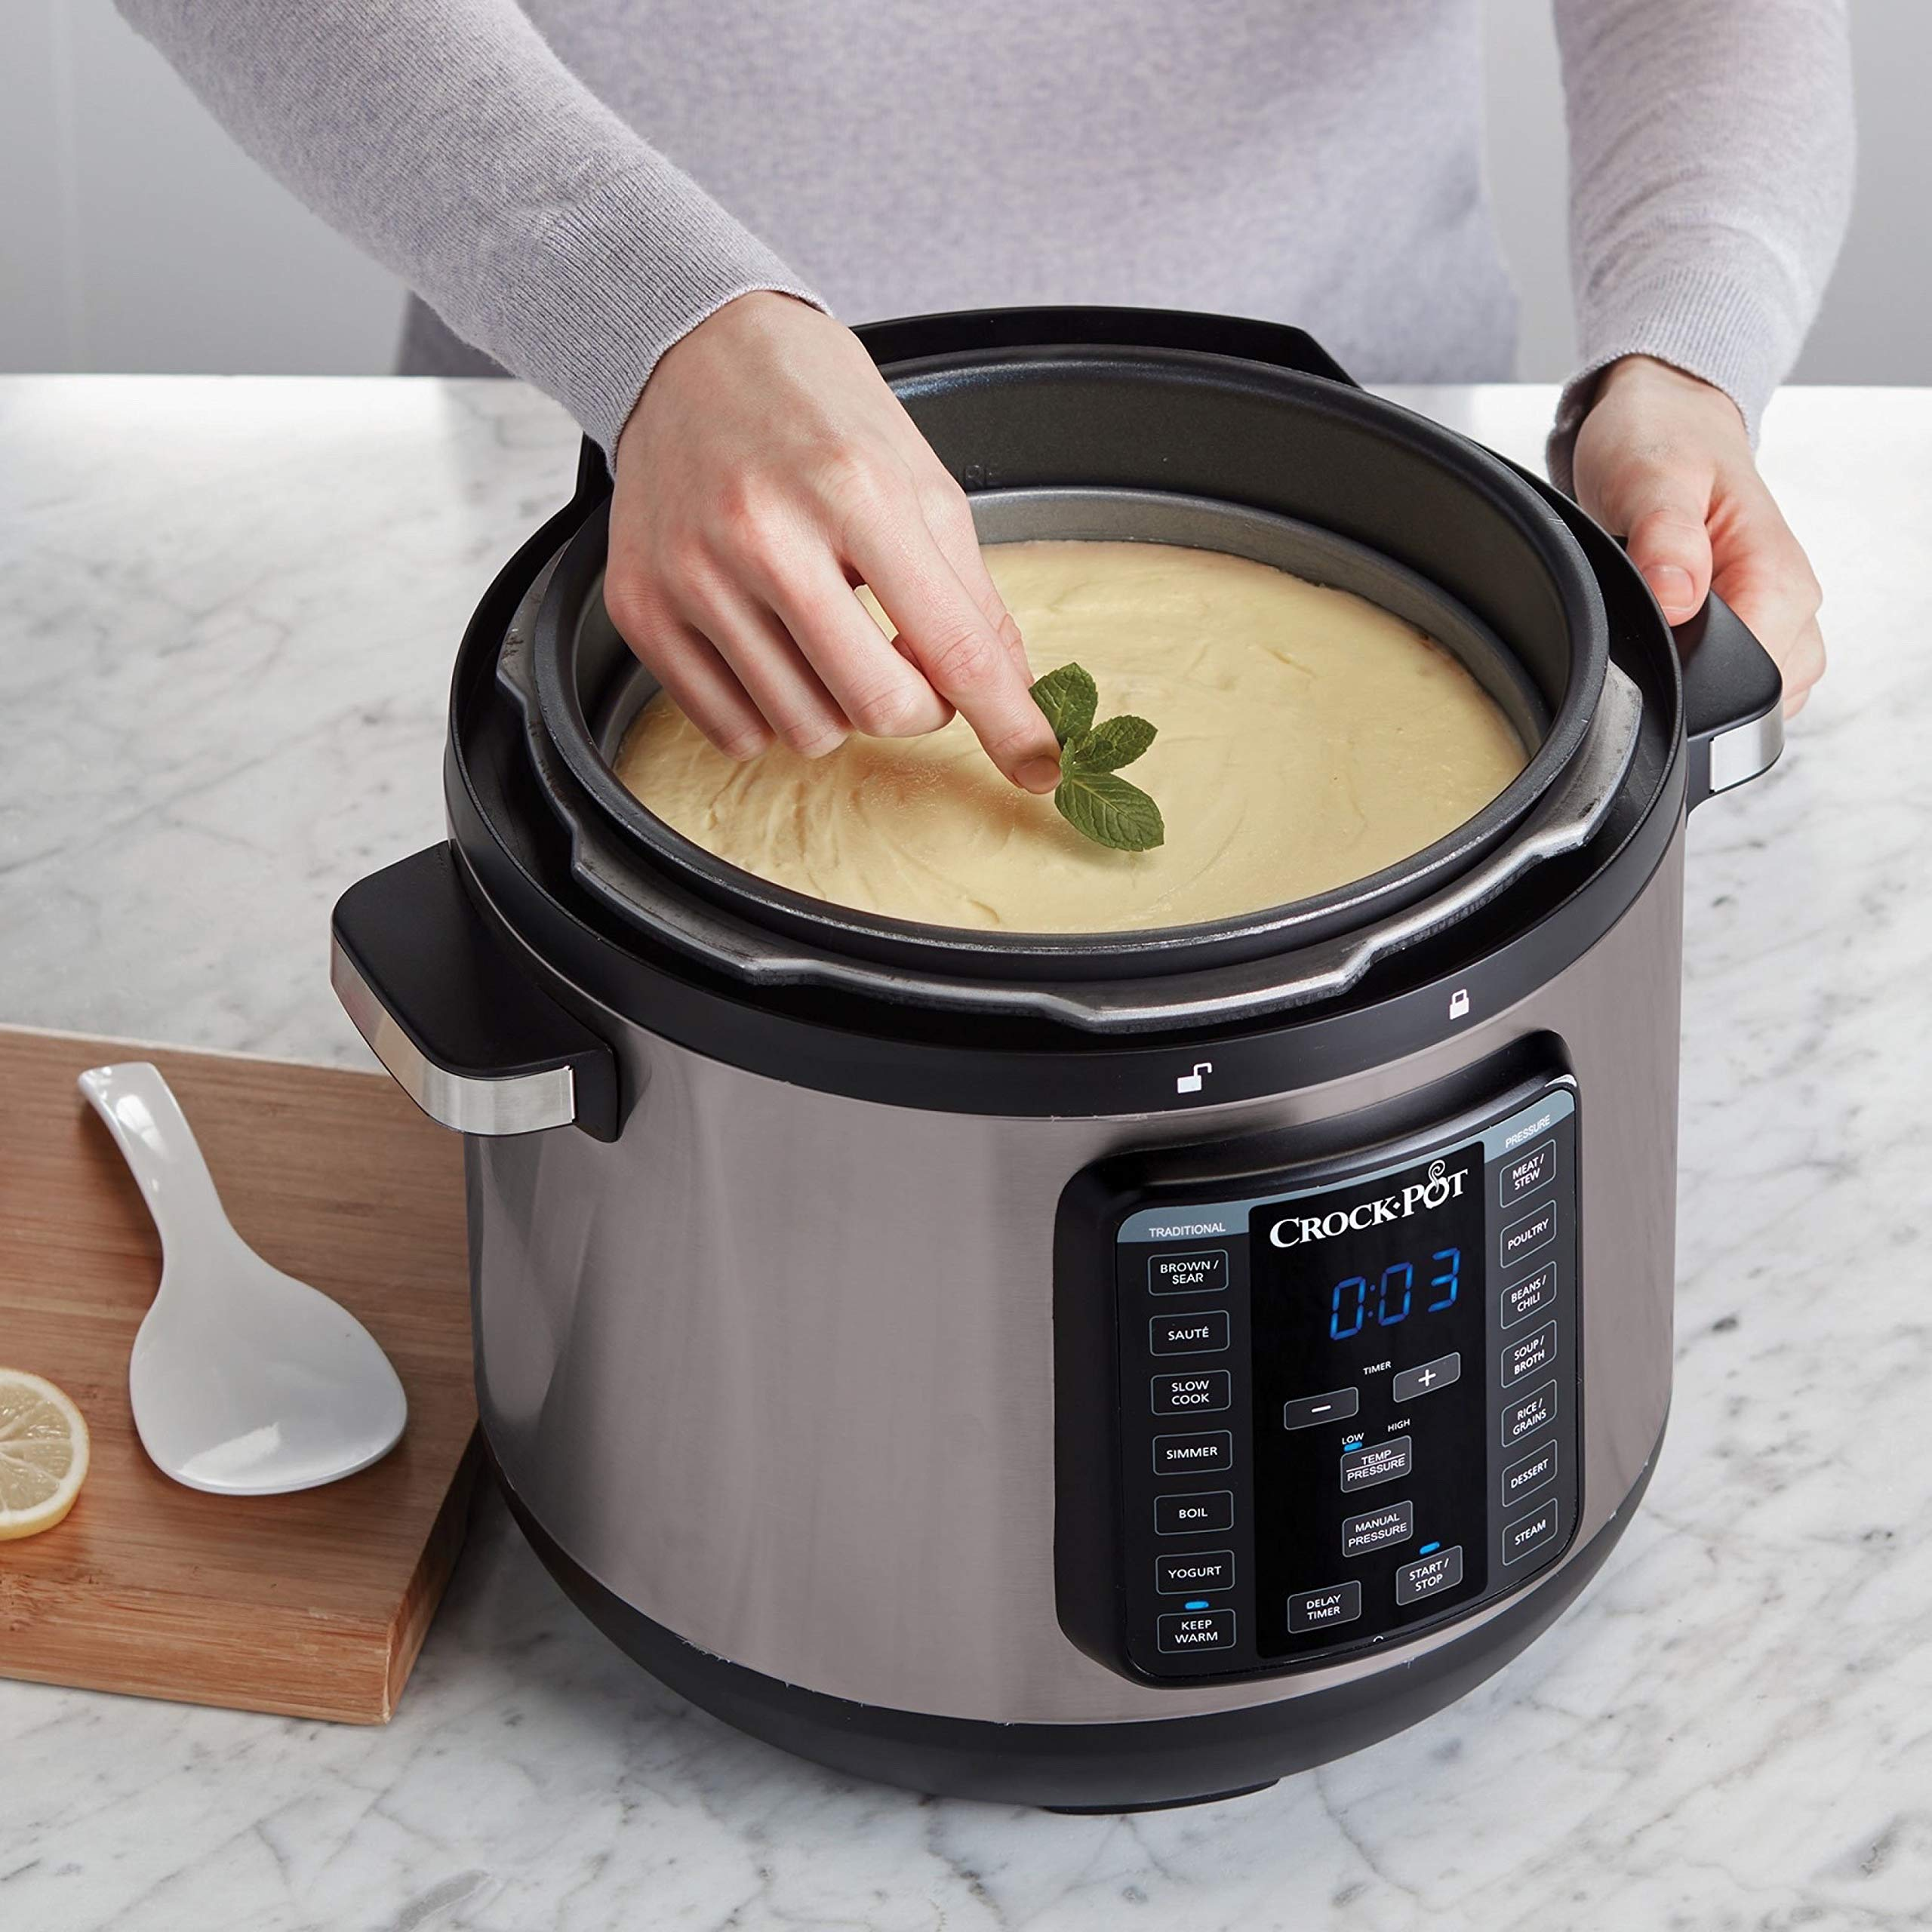 Crock-Pot 8-Quart Multi-Use XL Express Crock Programmable Slow Cooker and Pressure Cooker with Manual Pressure, Boil & Simmer, Black Stainless by Crock-Pot (Image #8)